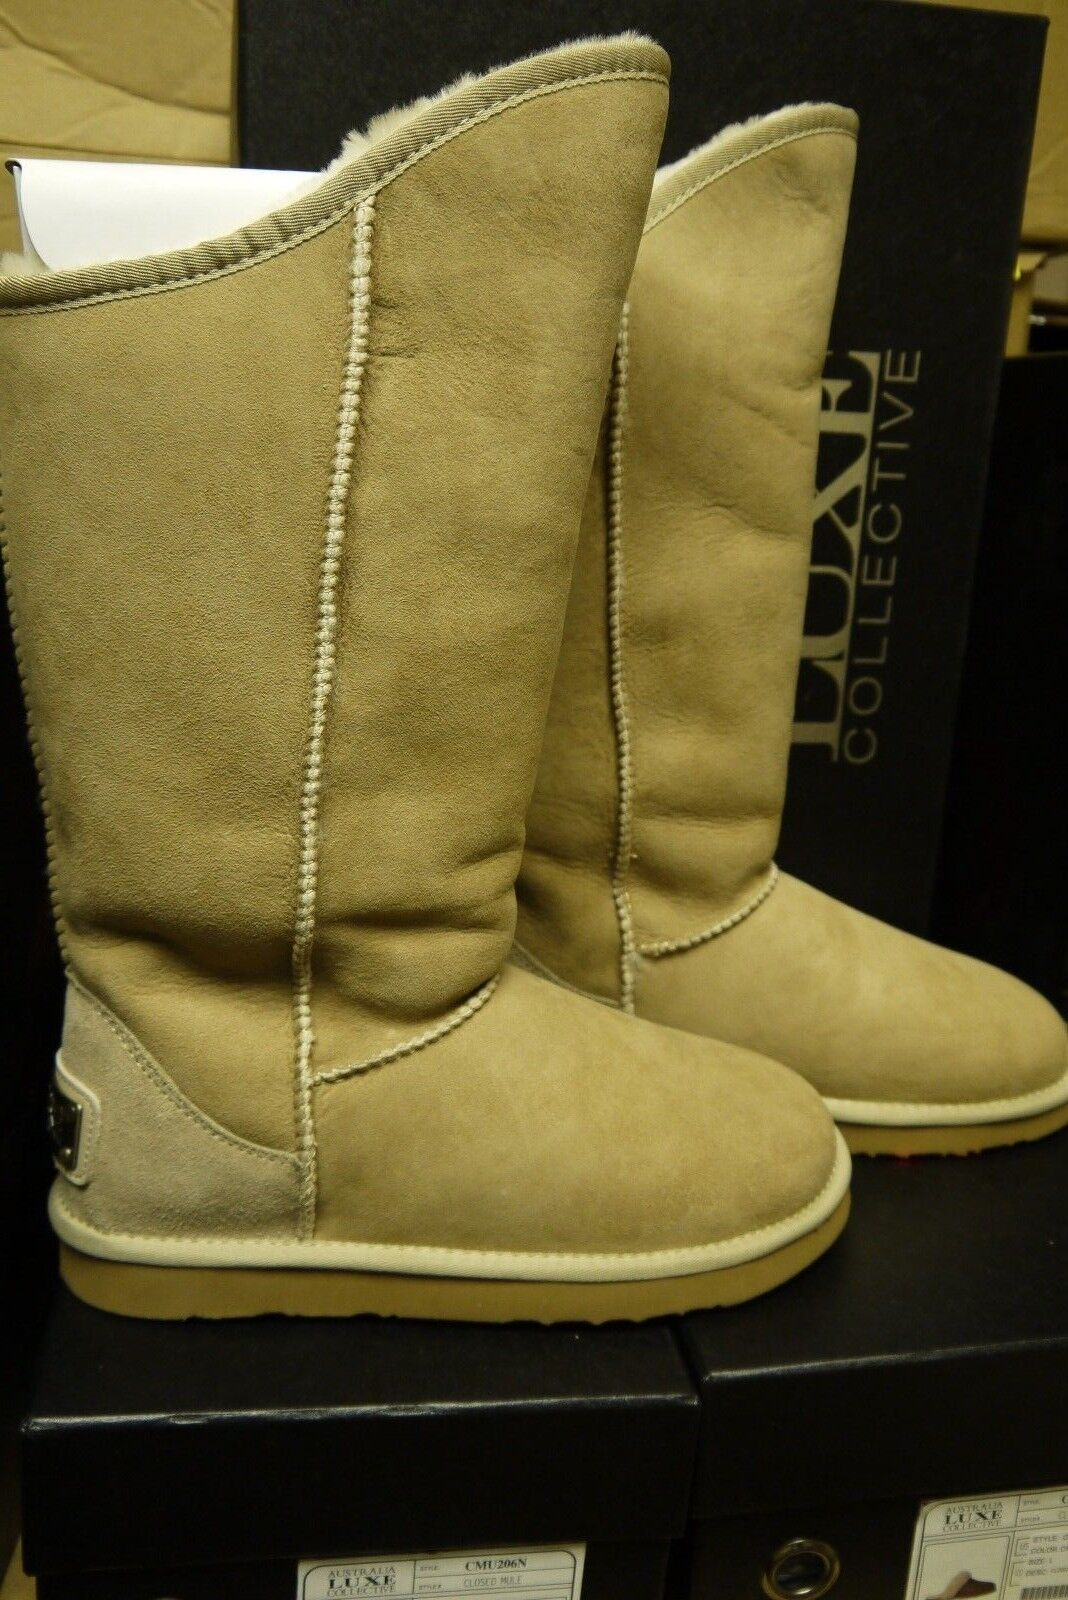 Australia Luxe Collective Cosy Tall Sand Size 5, 6, 7, 8, 9 Available- New